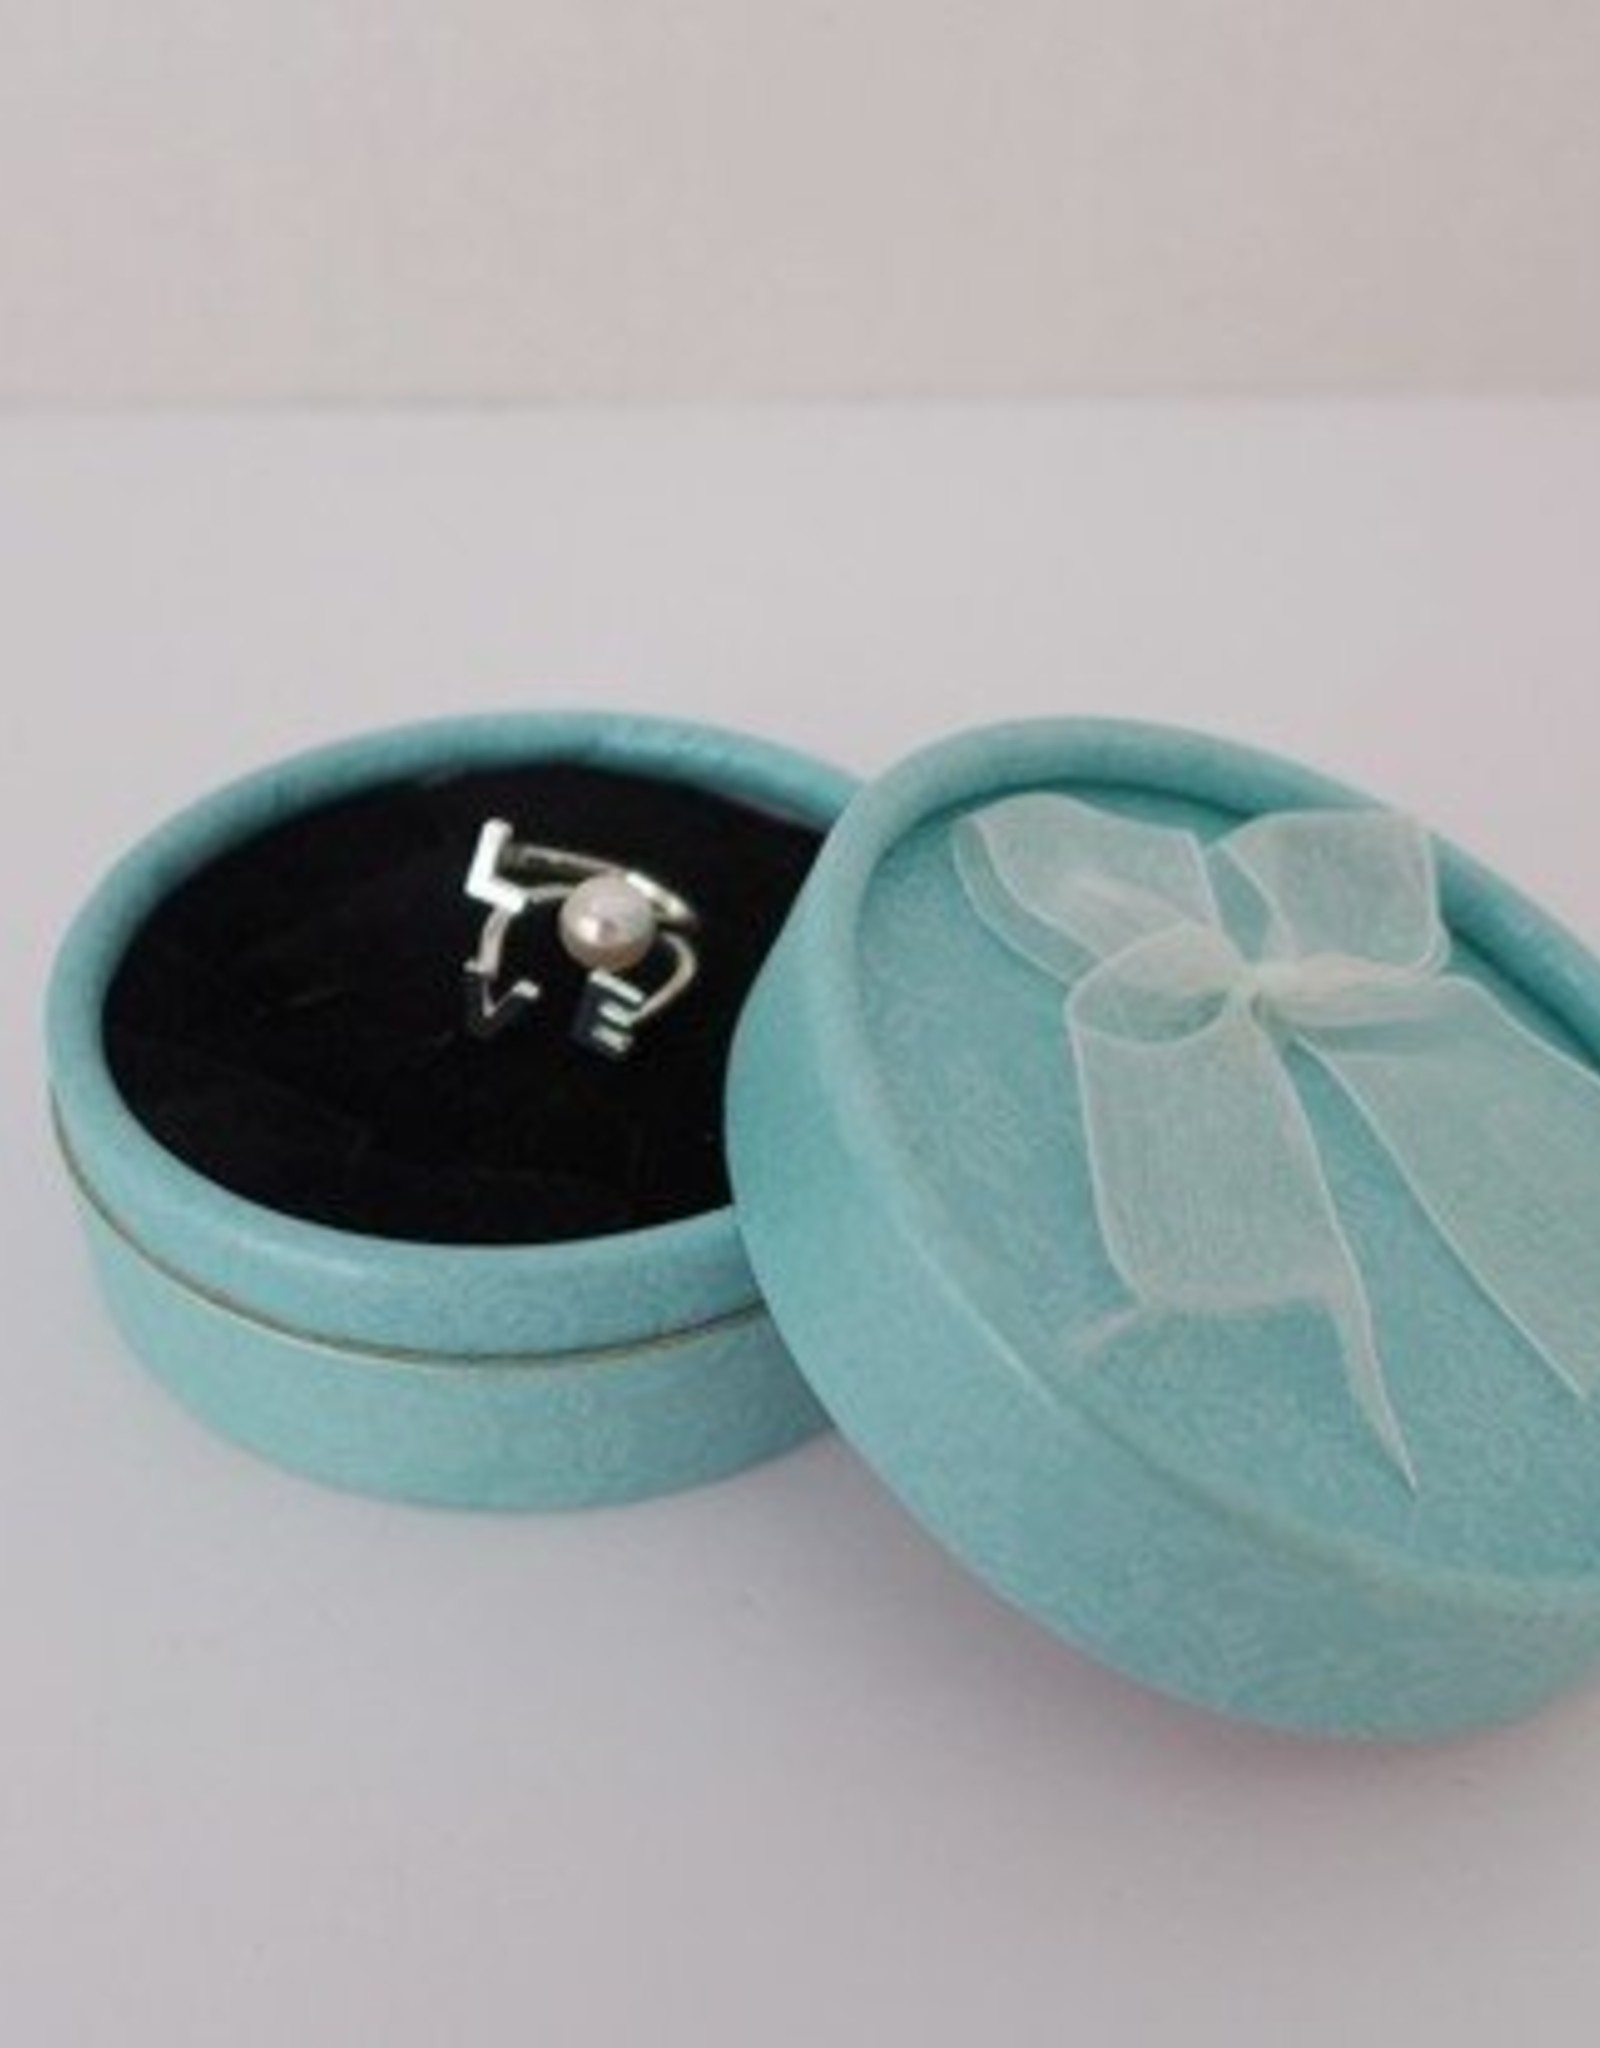 FH2 GB0005 Blue Jewlery Box